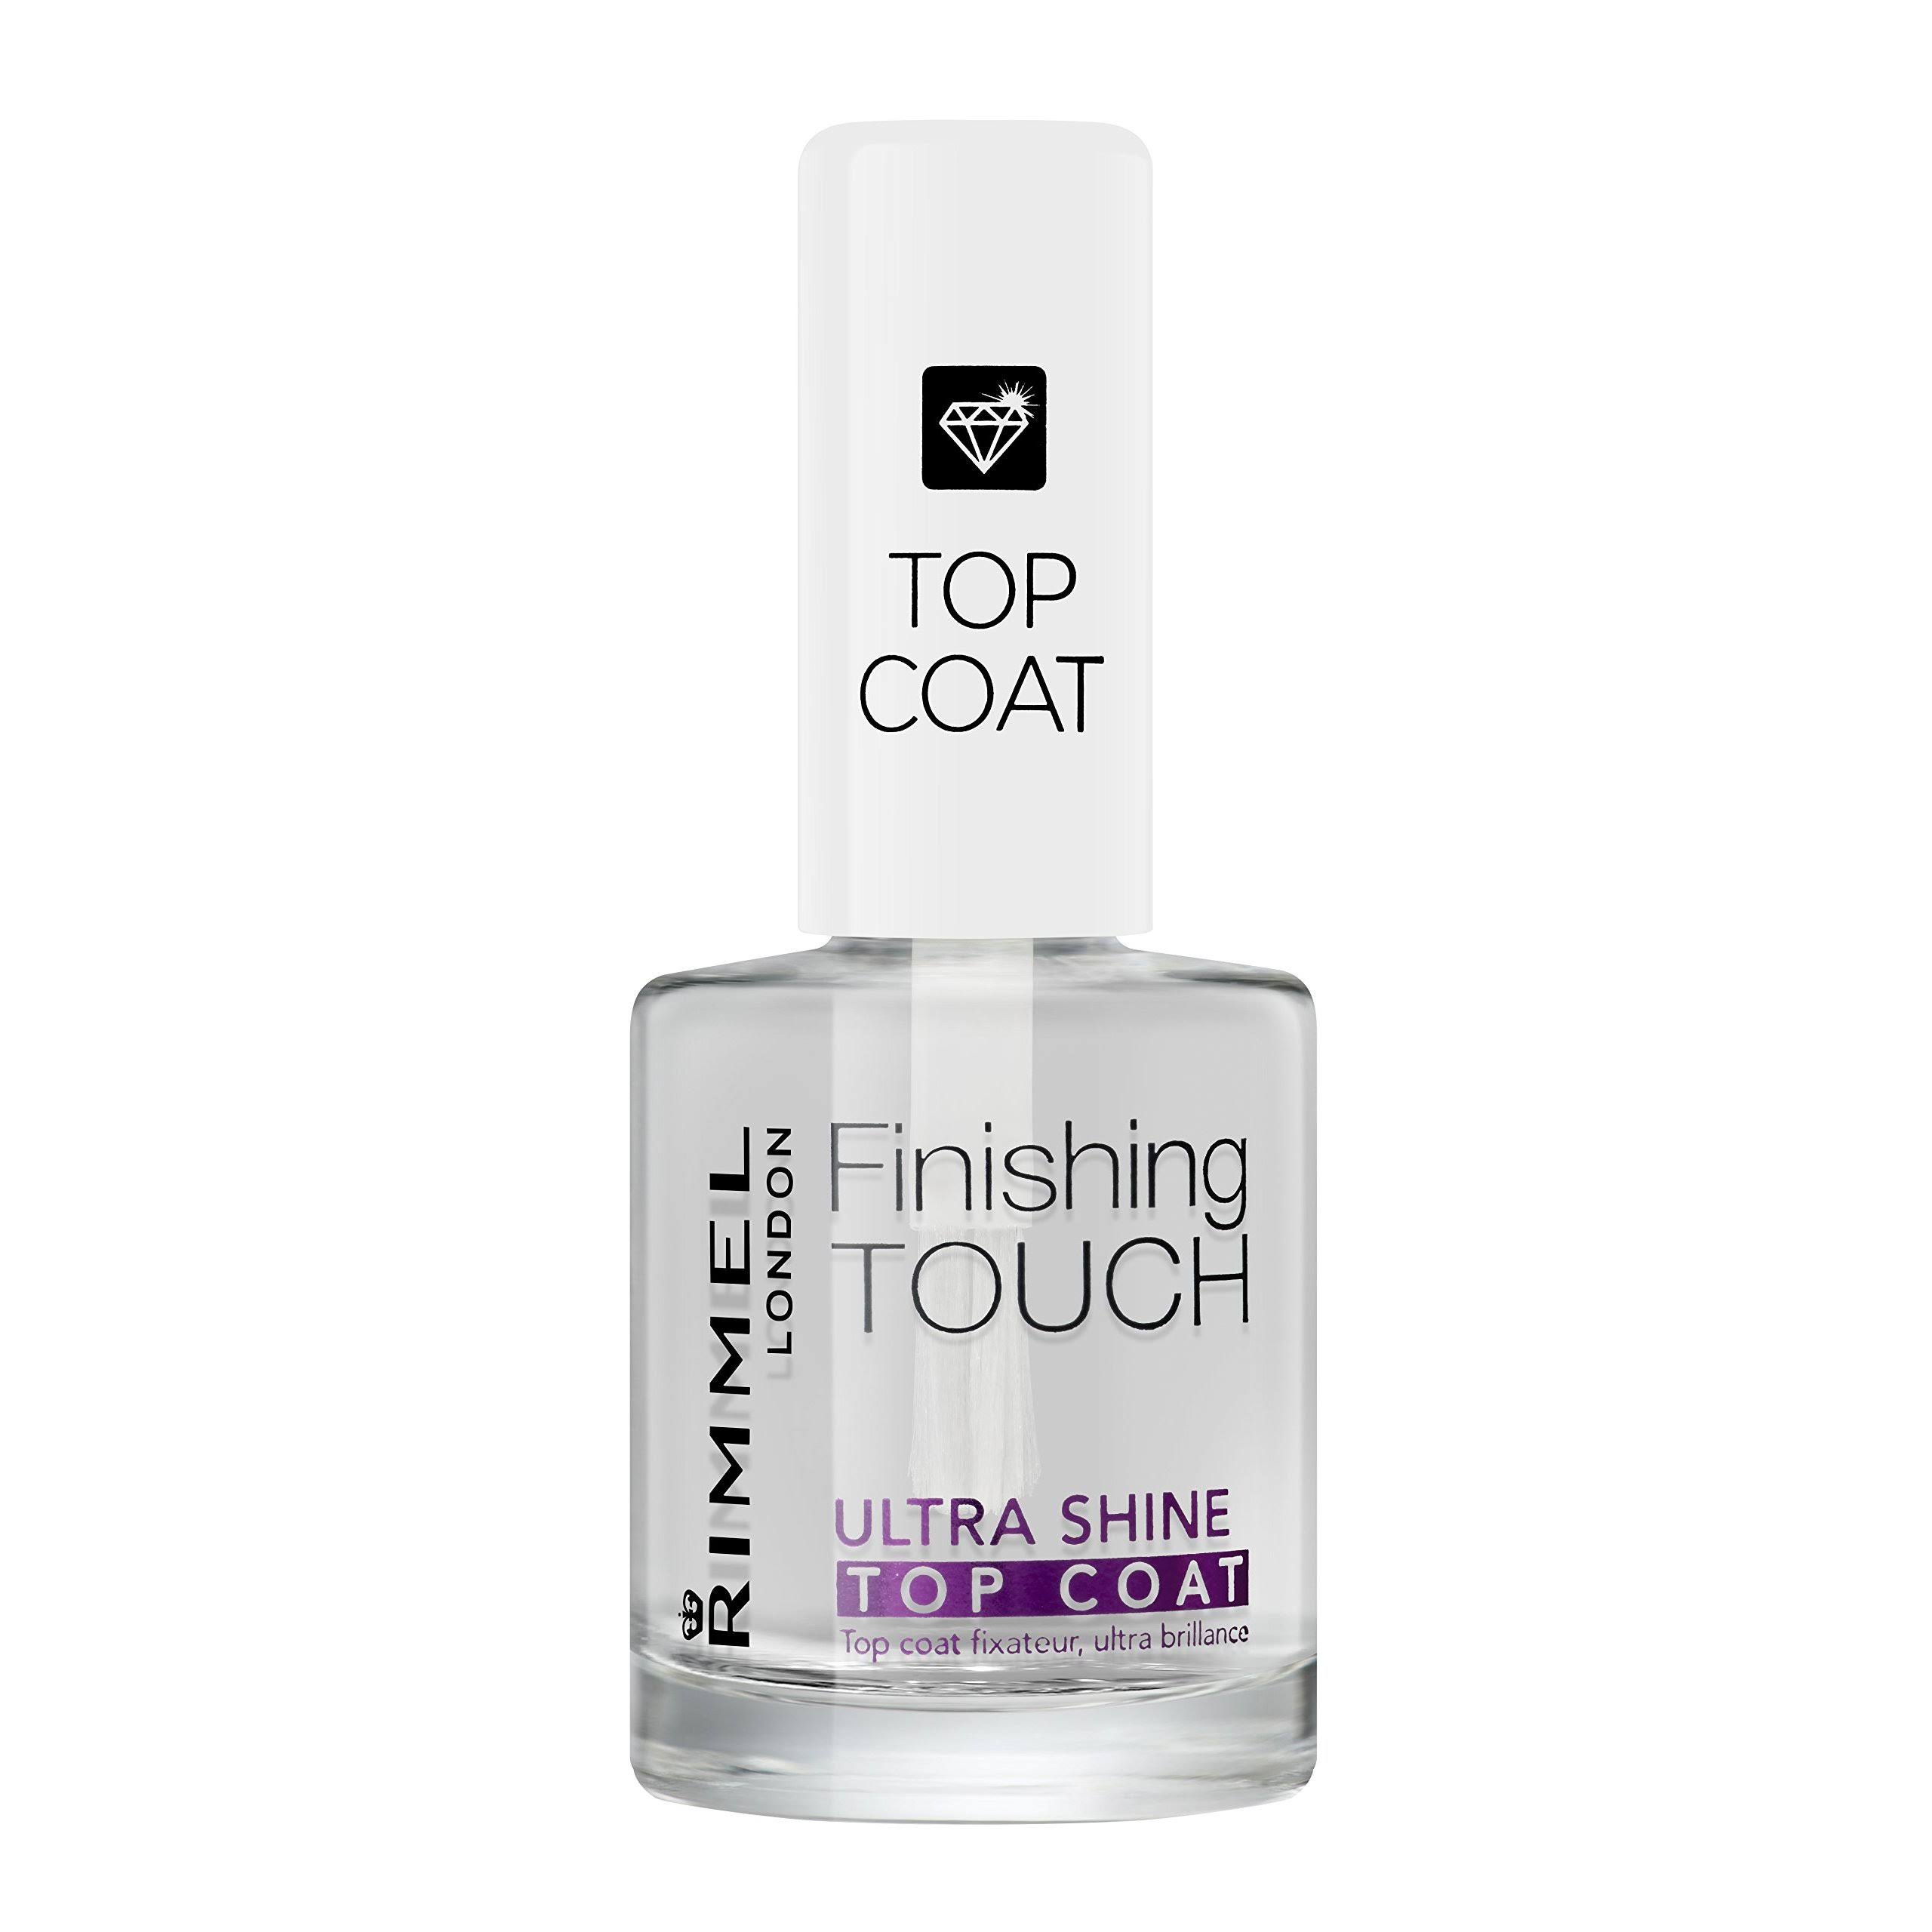 Rimmel London Finishing Touch Ultra Shine Top Coat Nail Polish - Clear, 12ml